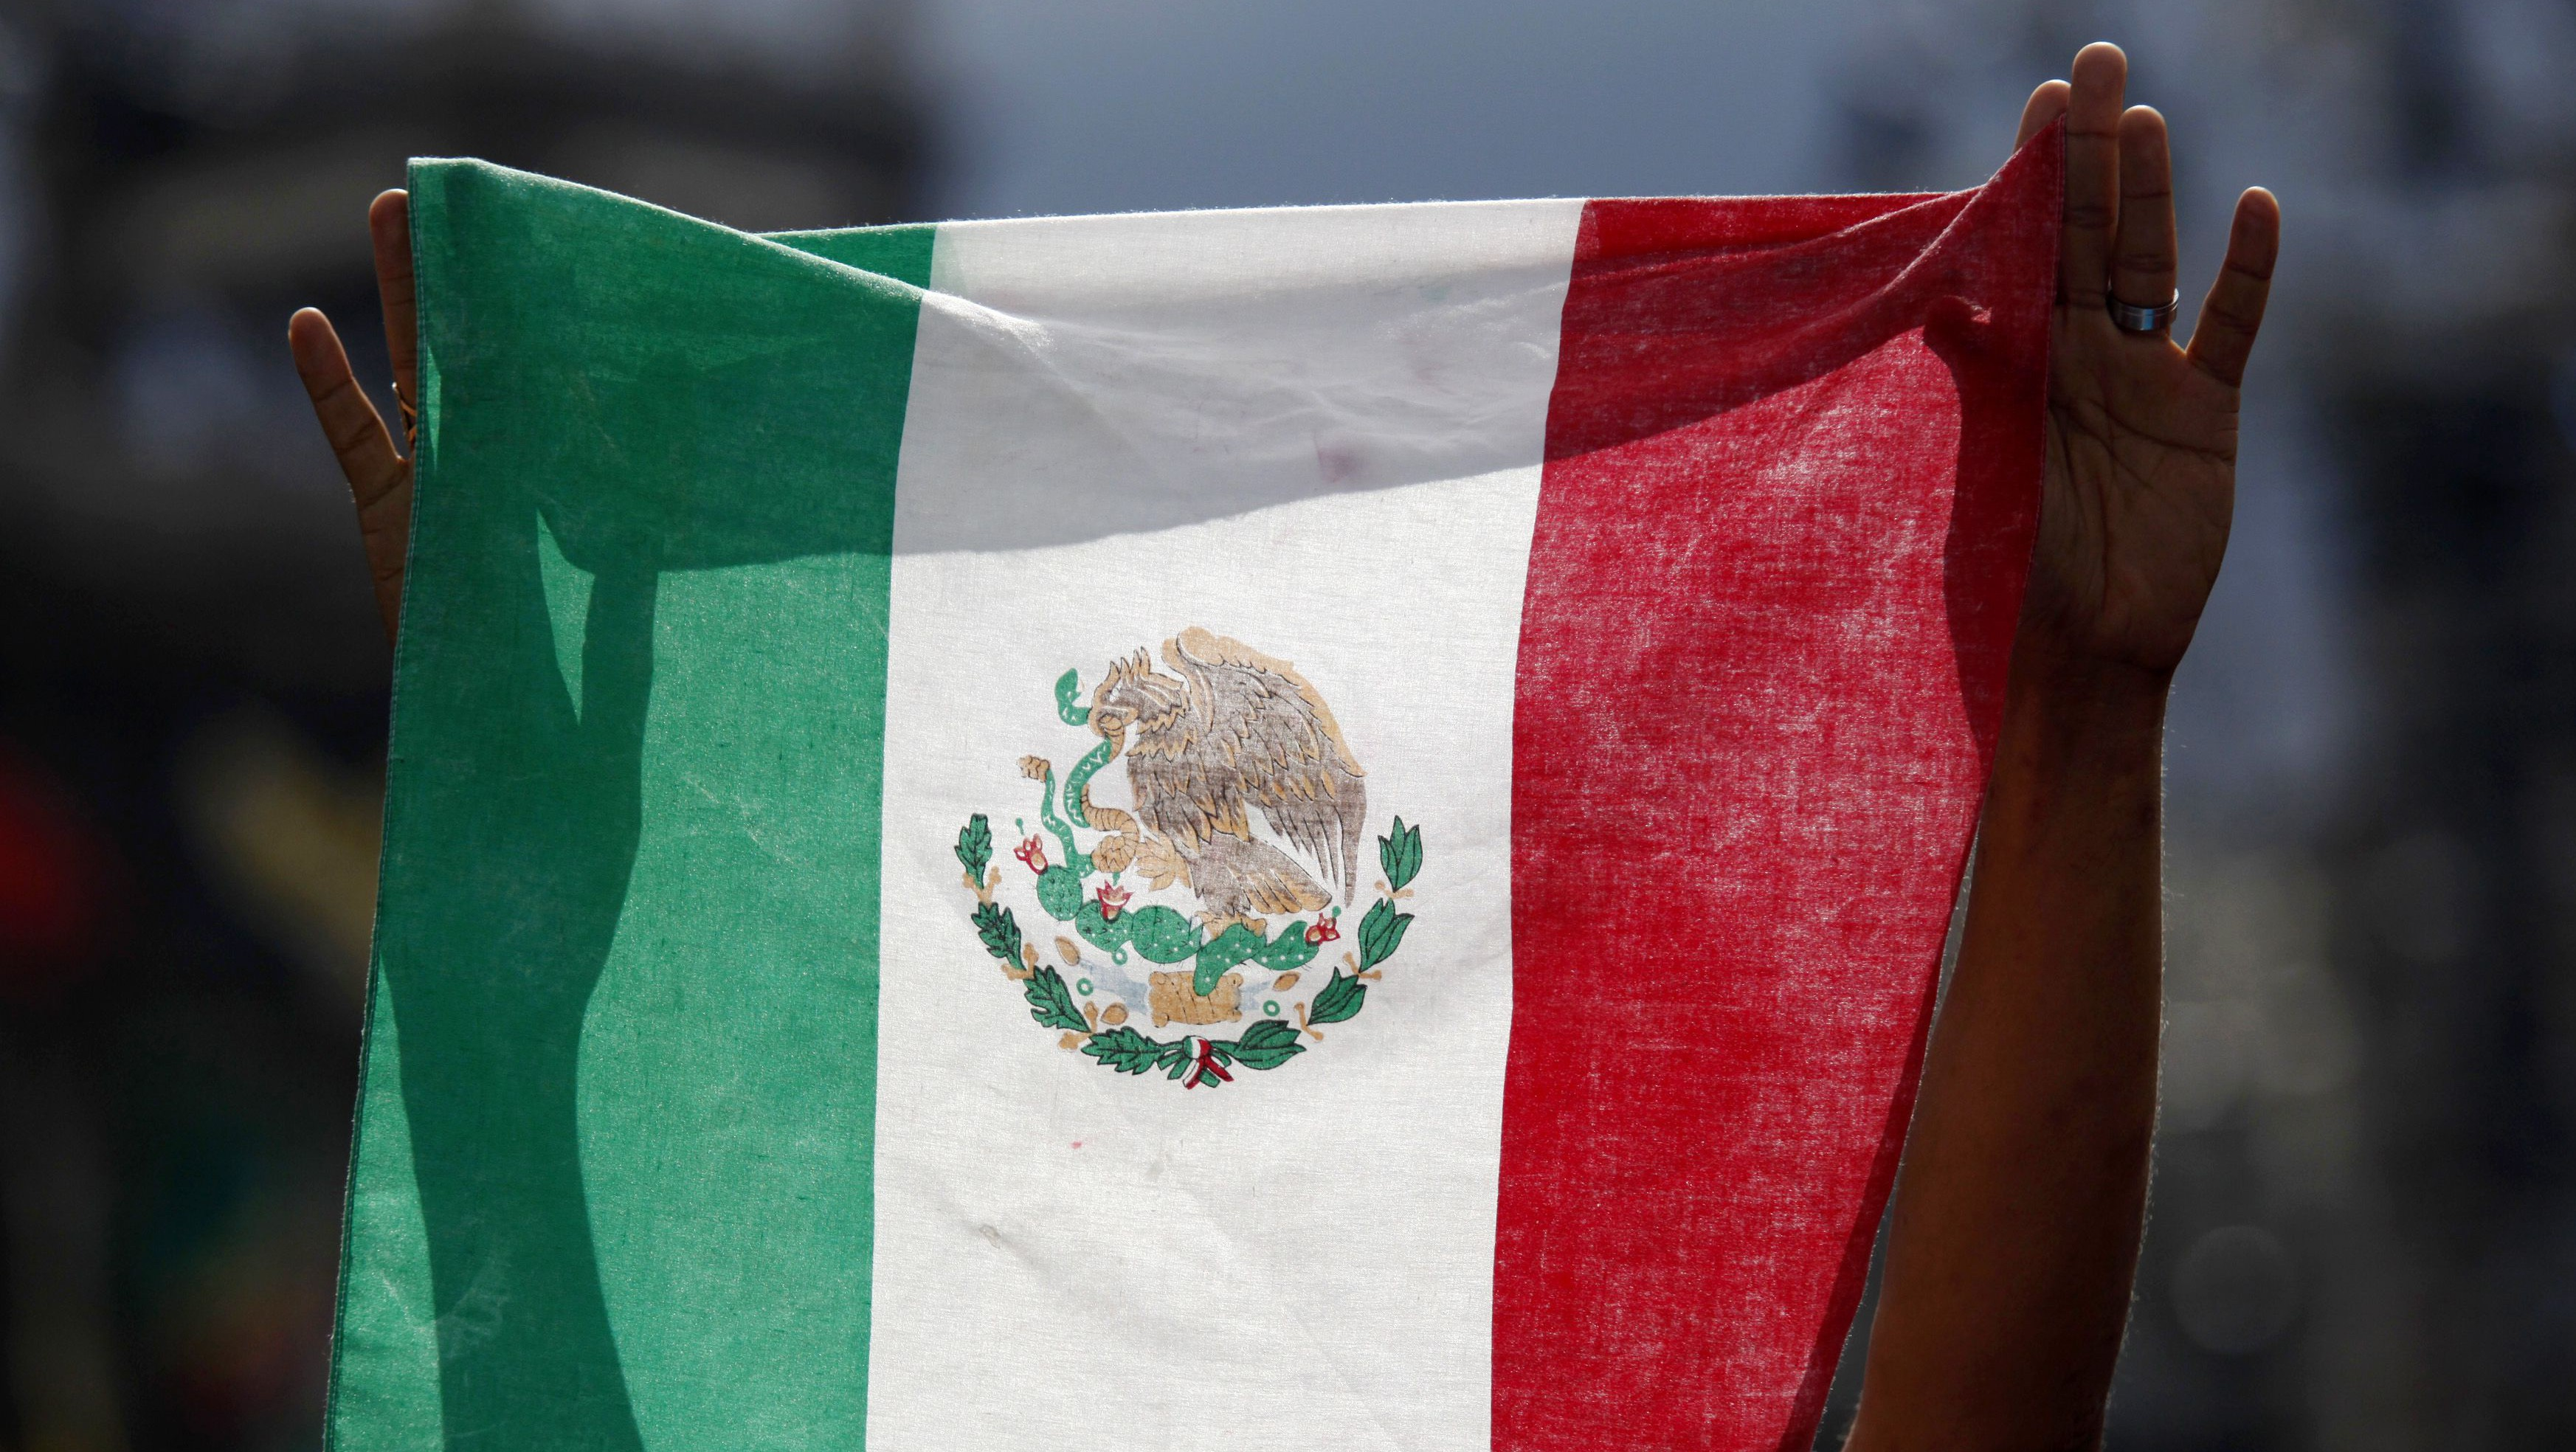 Mexico's national flag is displayed in Mexico City